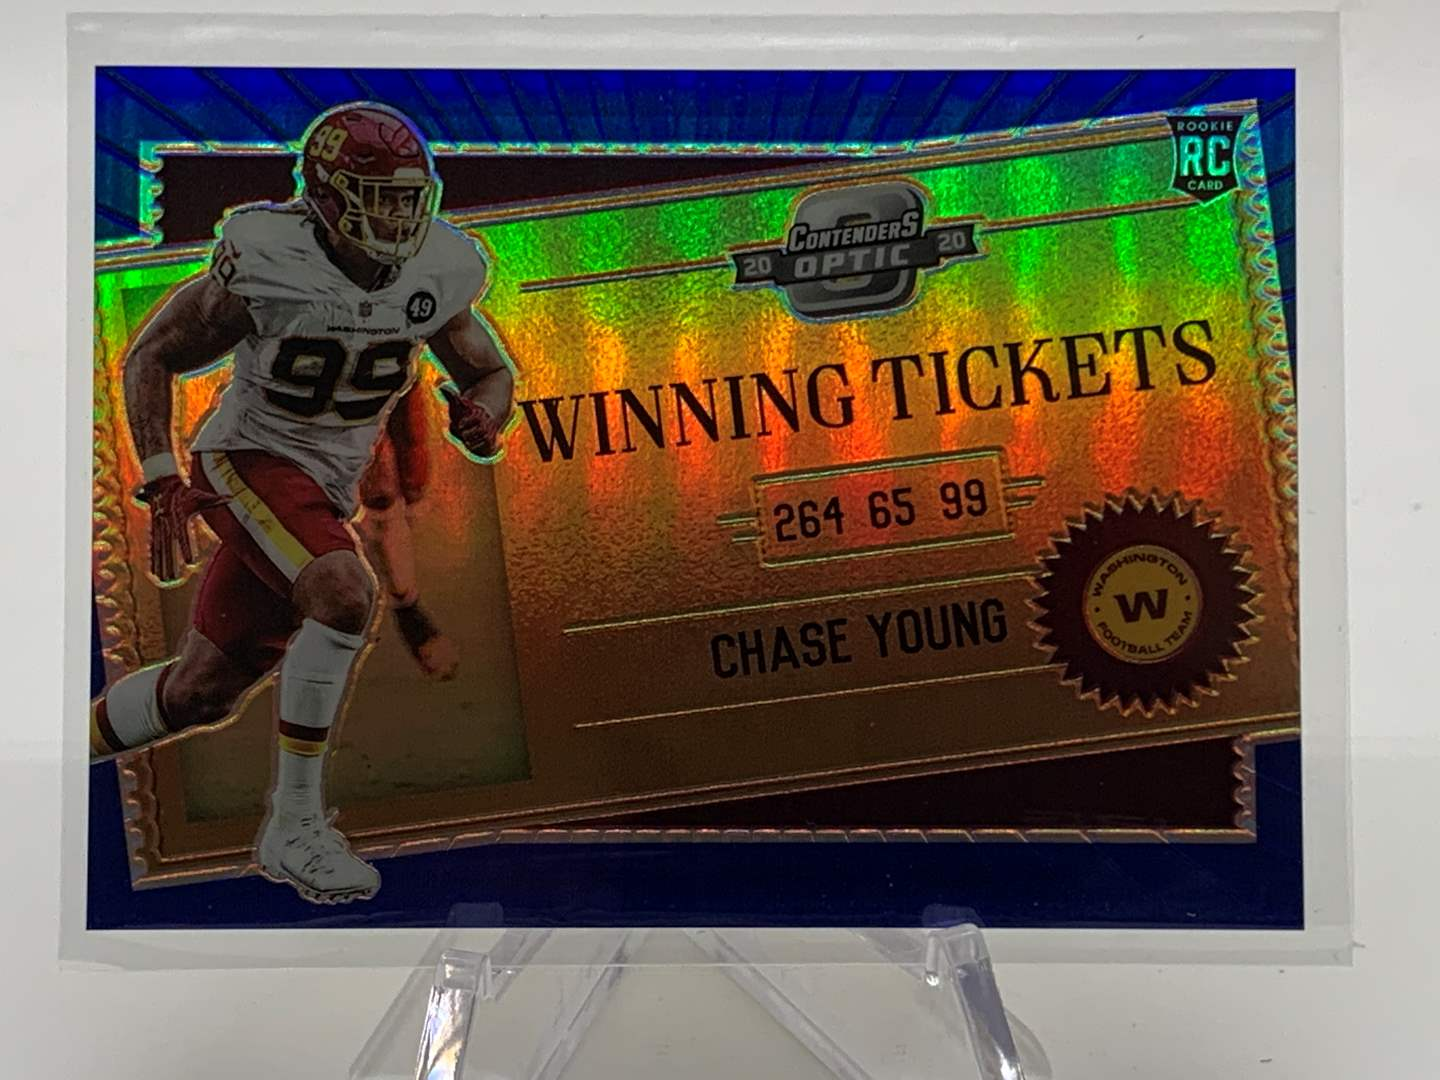 Lot # 2 2020 Panini Contenders Optic CHASE YOUNG Winning Tickets #88/99 (main image)